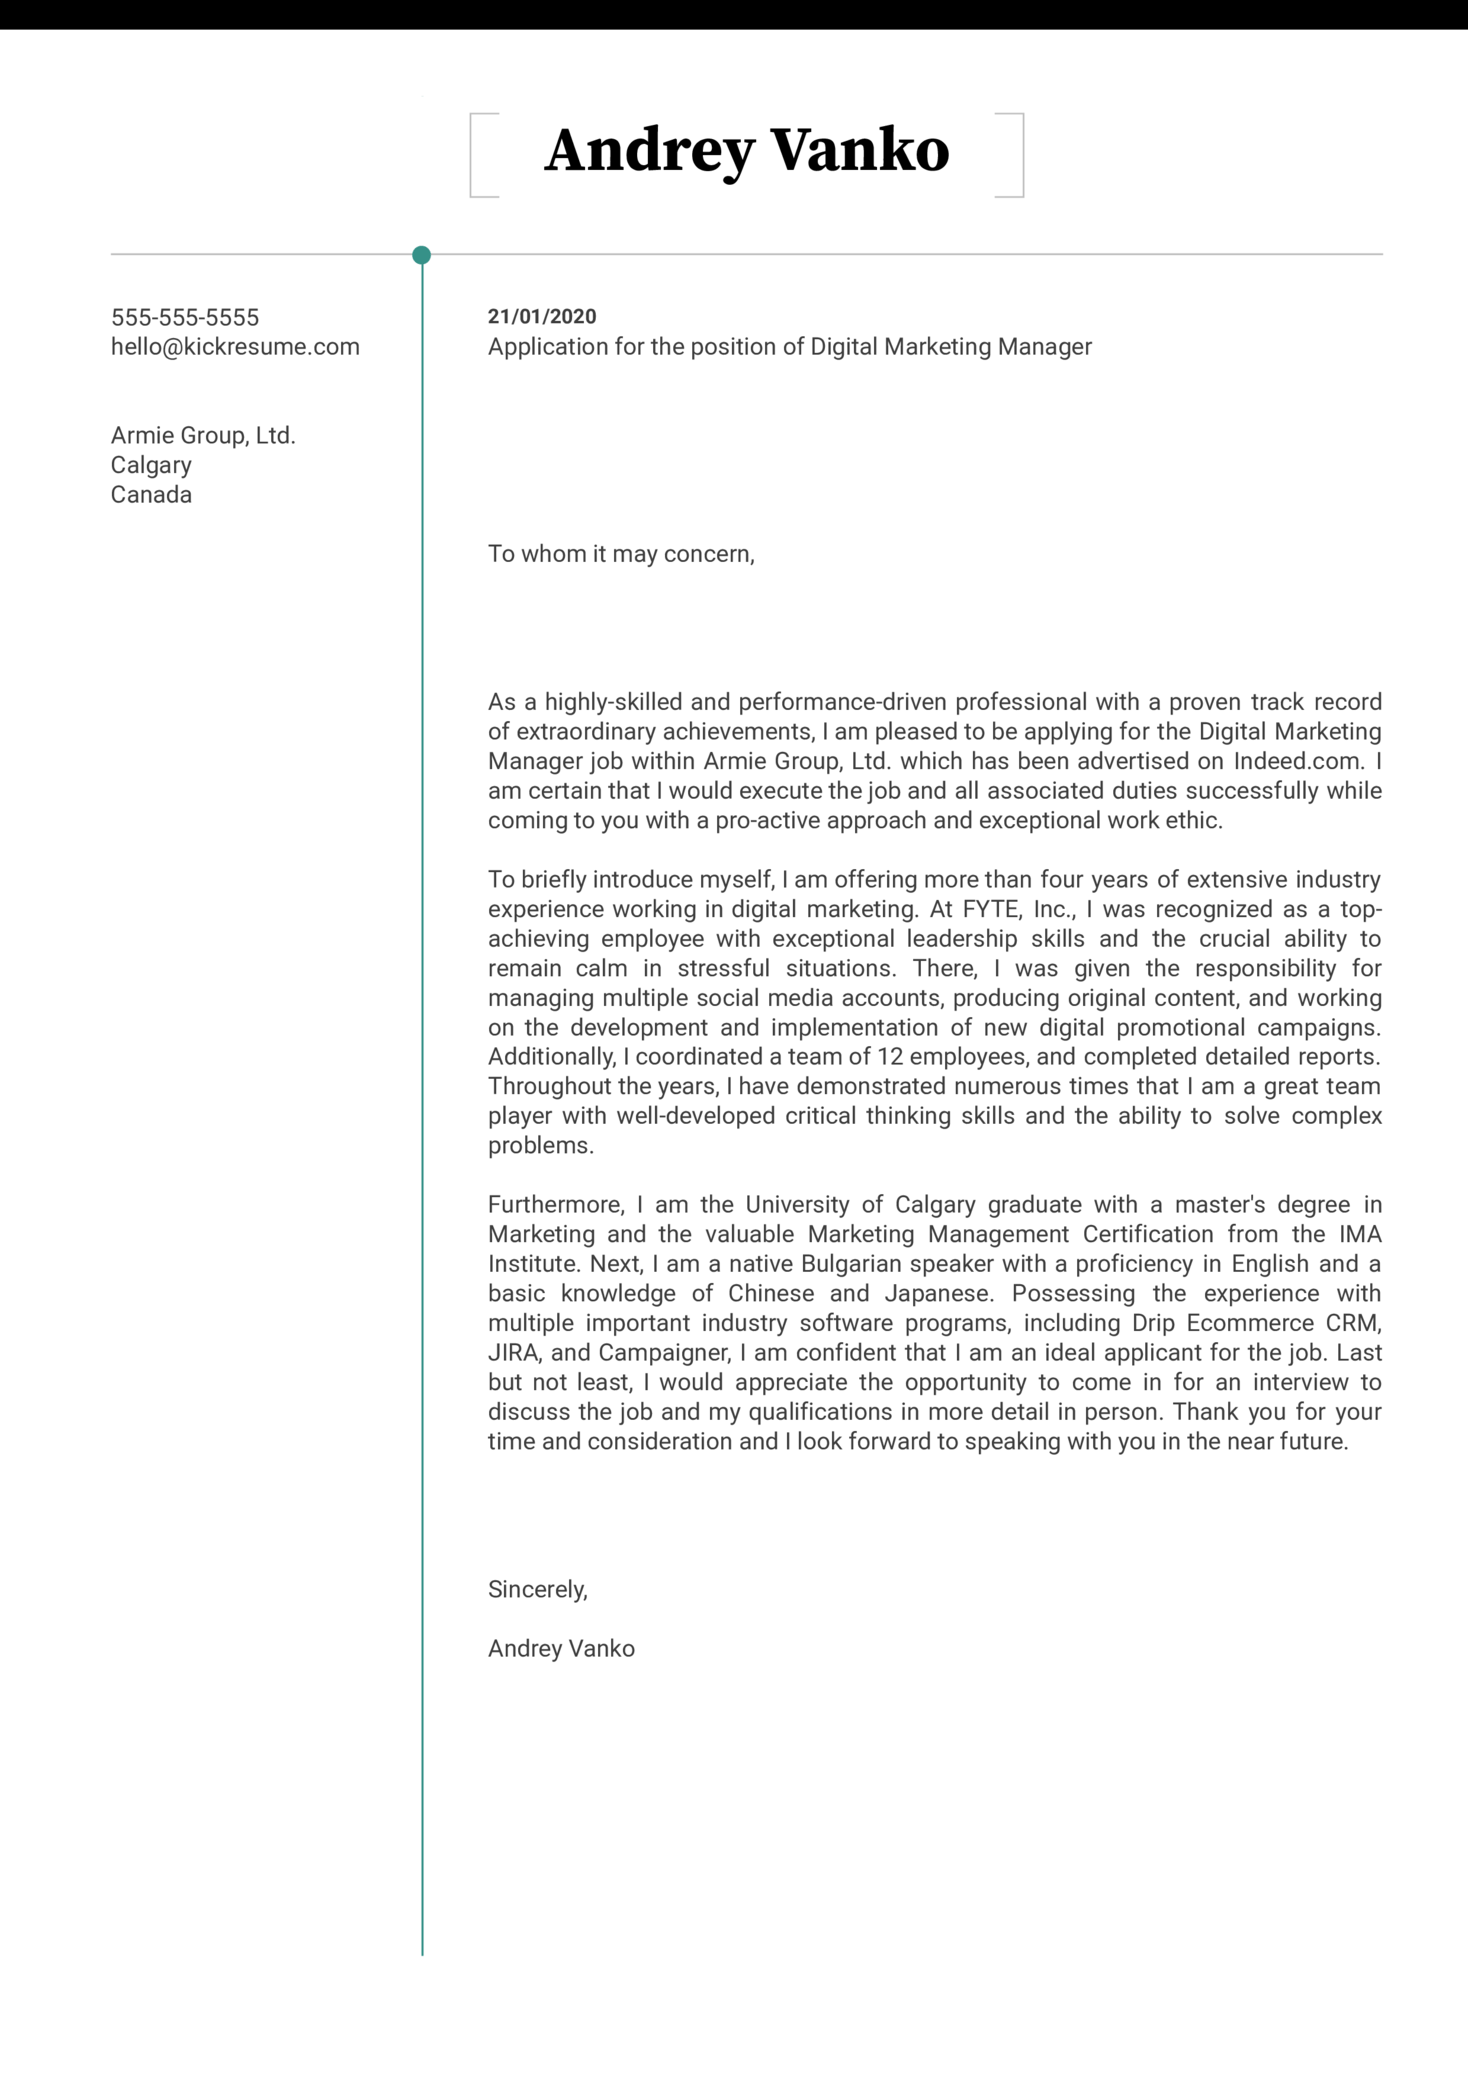 Digital Marketing Manager Cover Letter Example